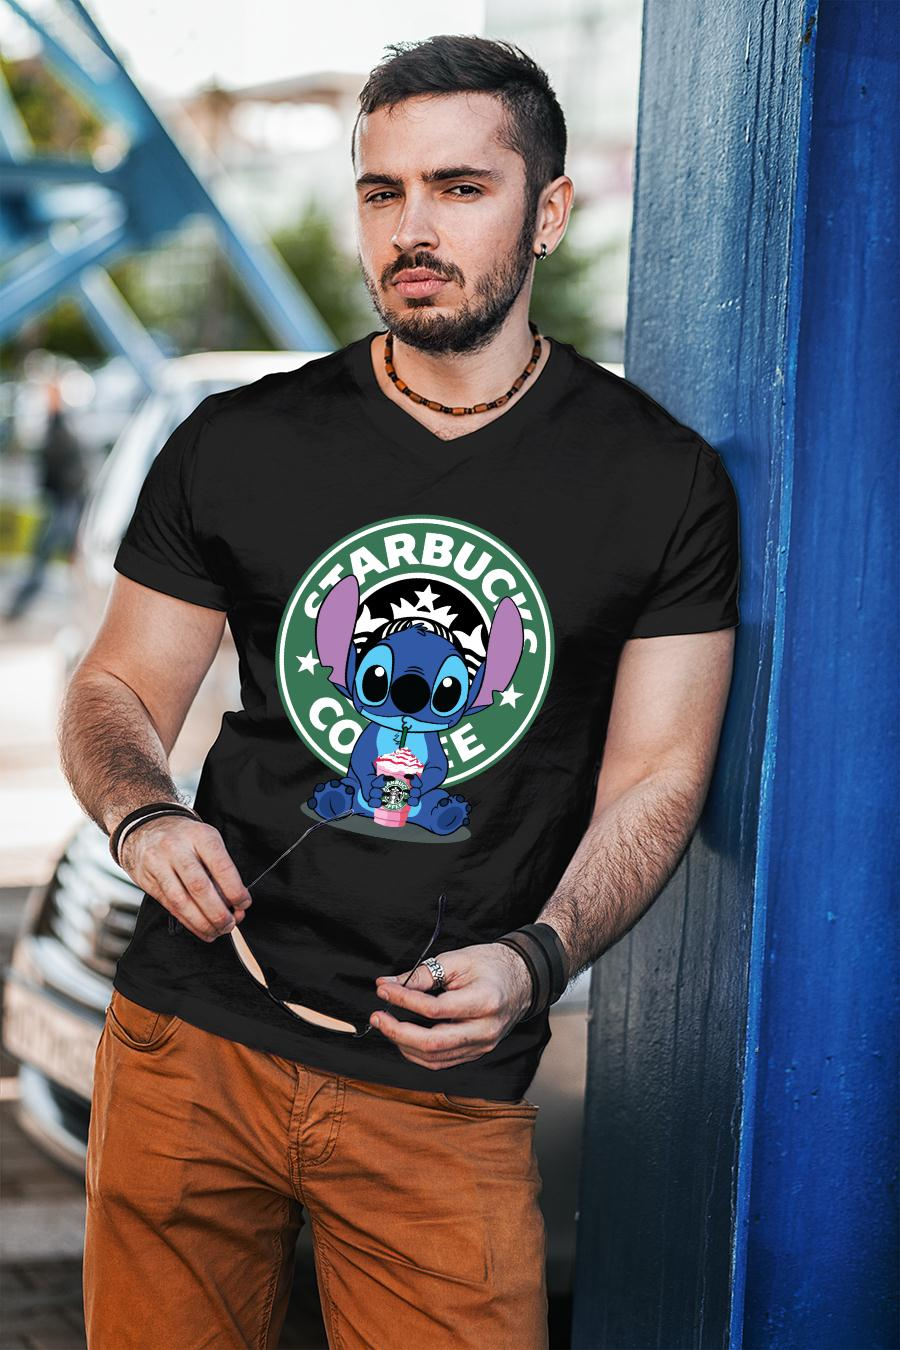 Stitch Starbucks coffee shirt unisex